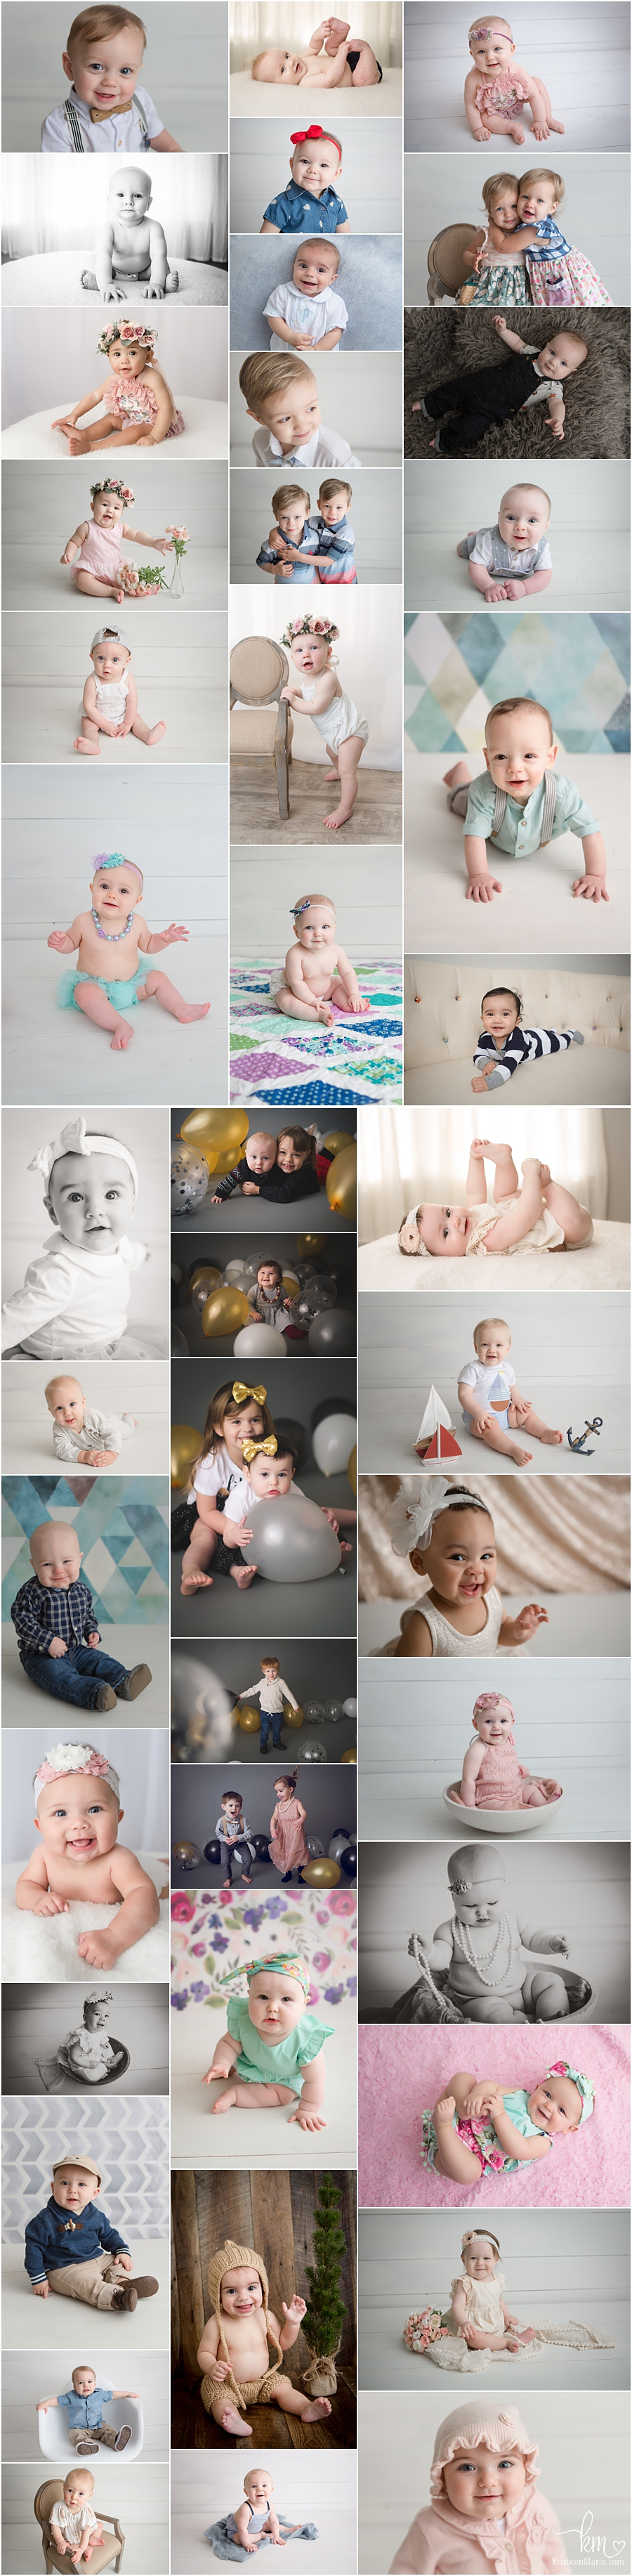 Studio Photography of Children in Indianapolis, Indiana